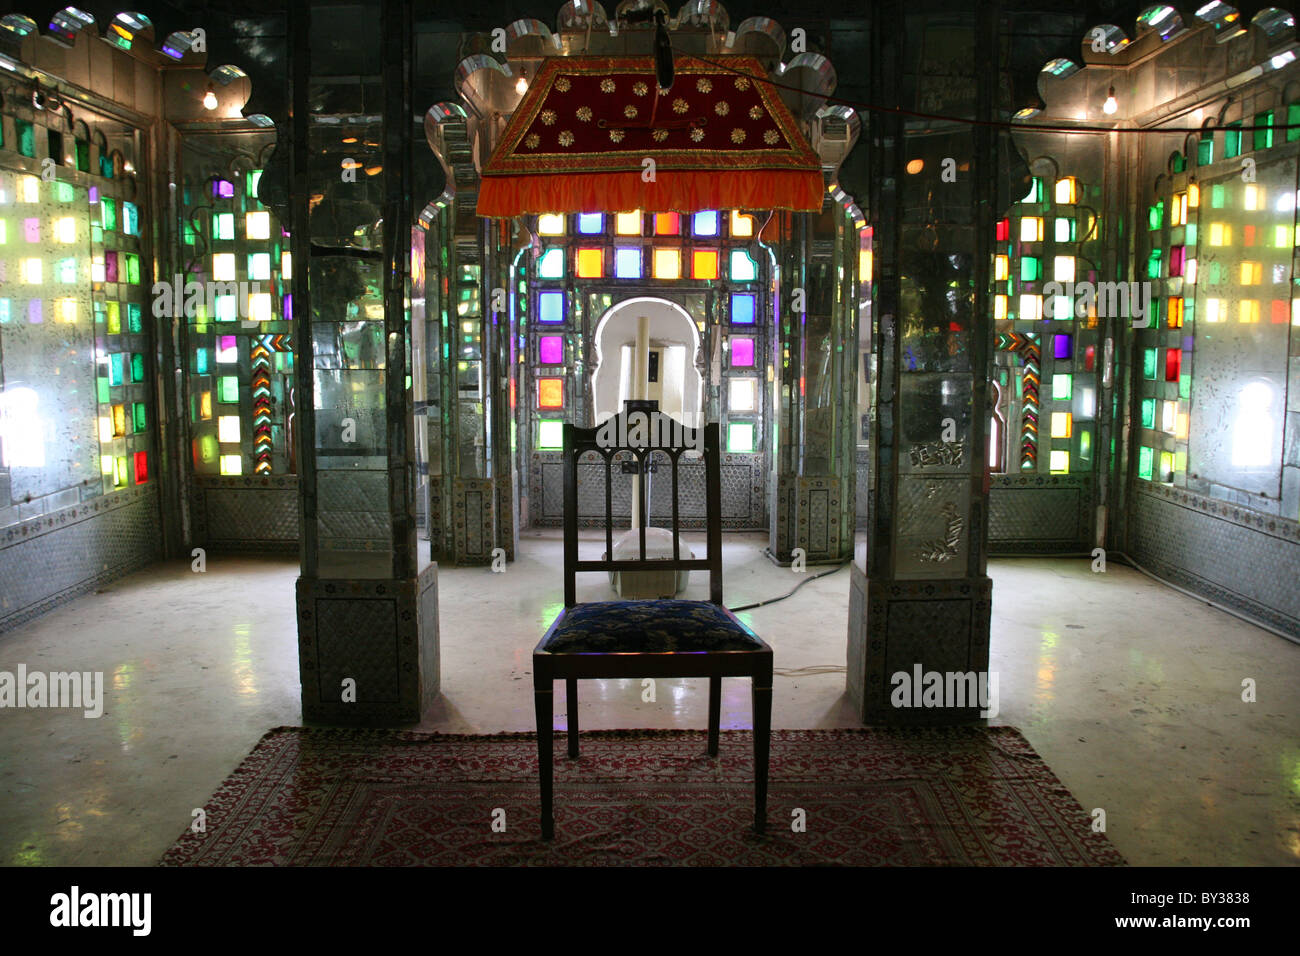 b16436af561d Extraordinary stained glass and mirrorwork throne room in the Manak Mahal  Ruby Palace at City Palace